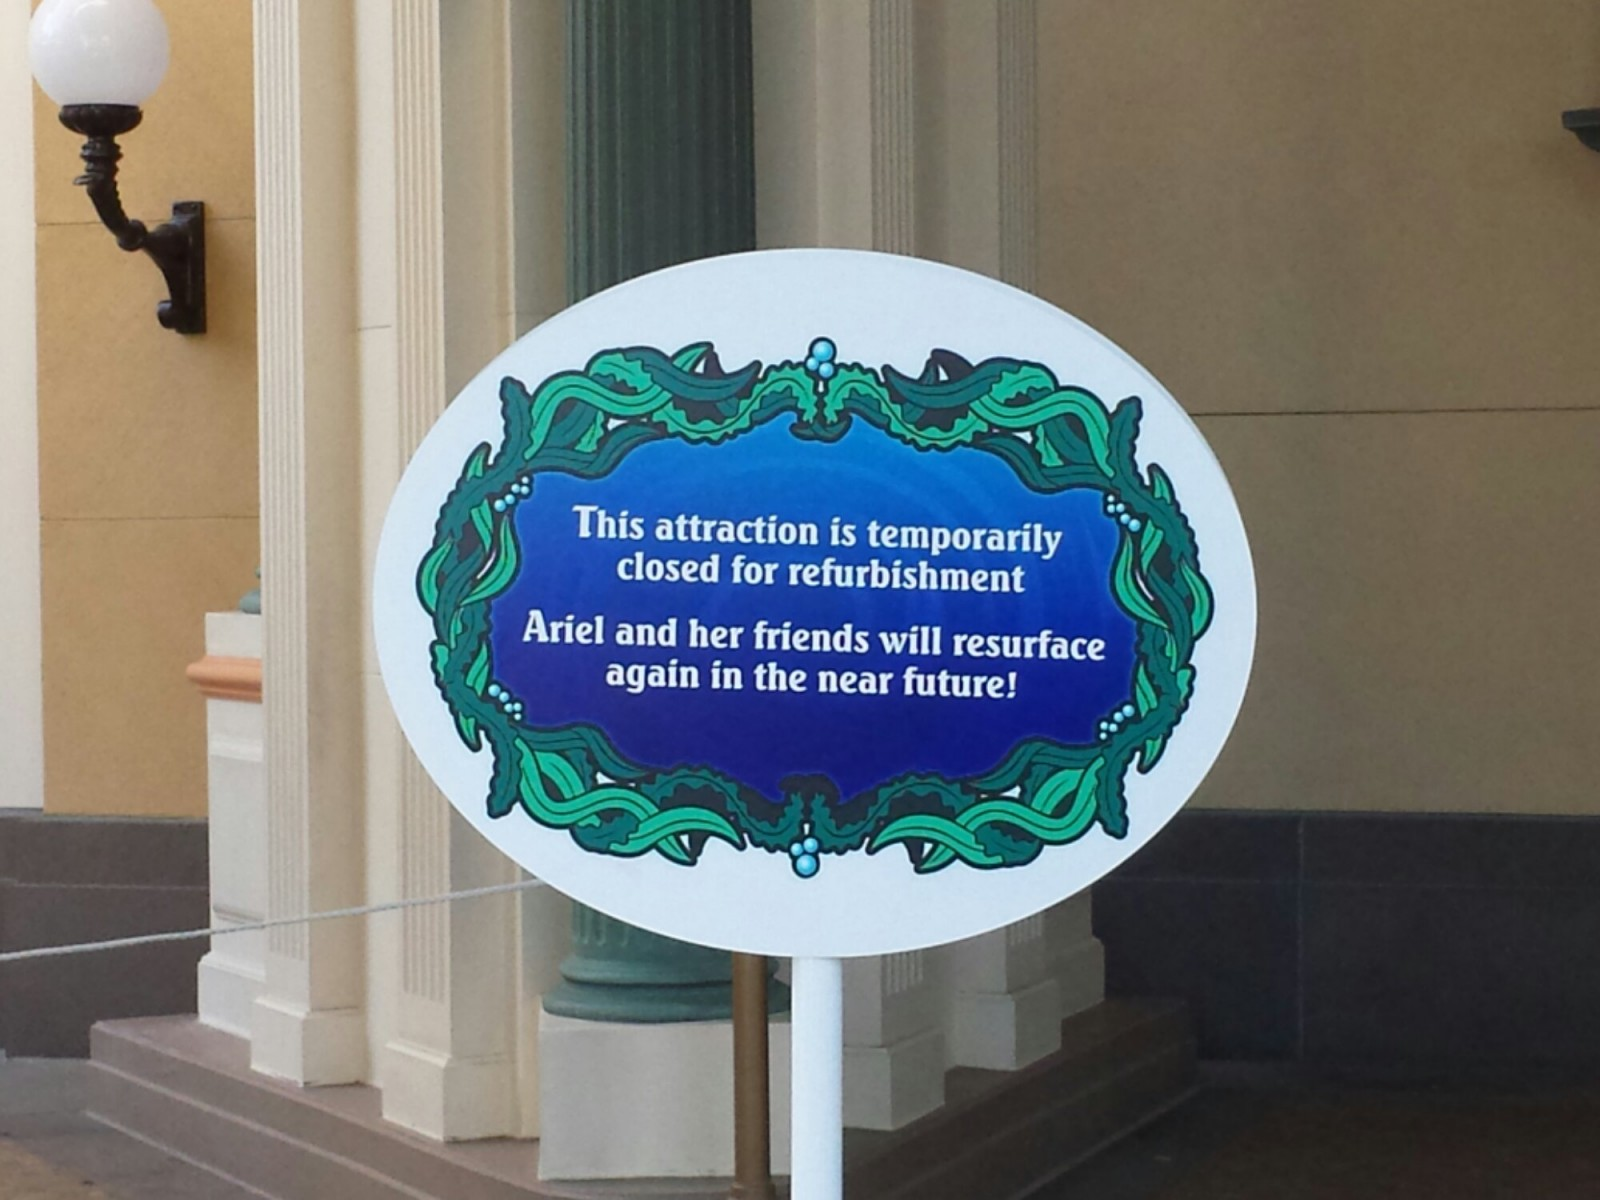 The Little Mermaid is closed for renovations